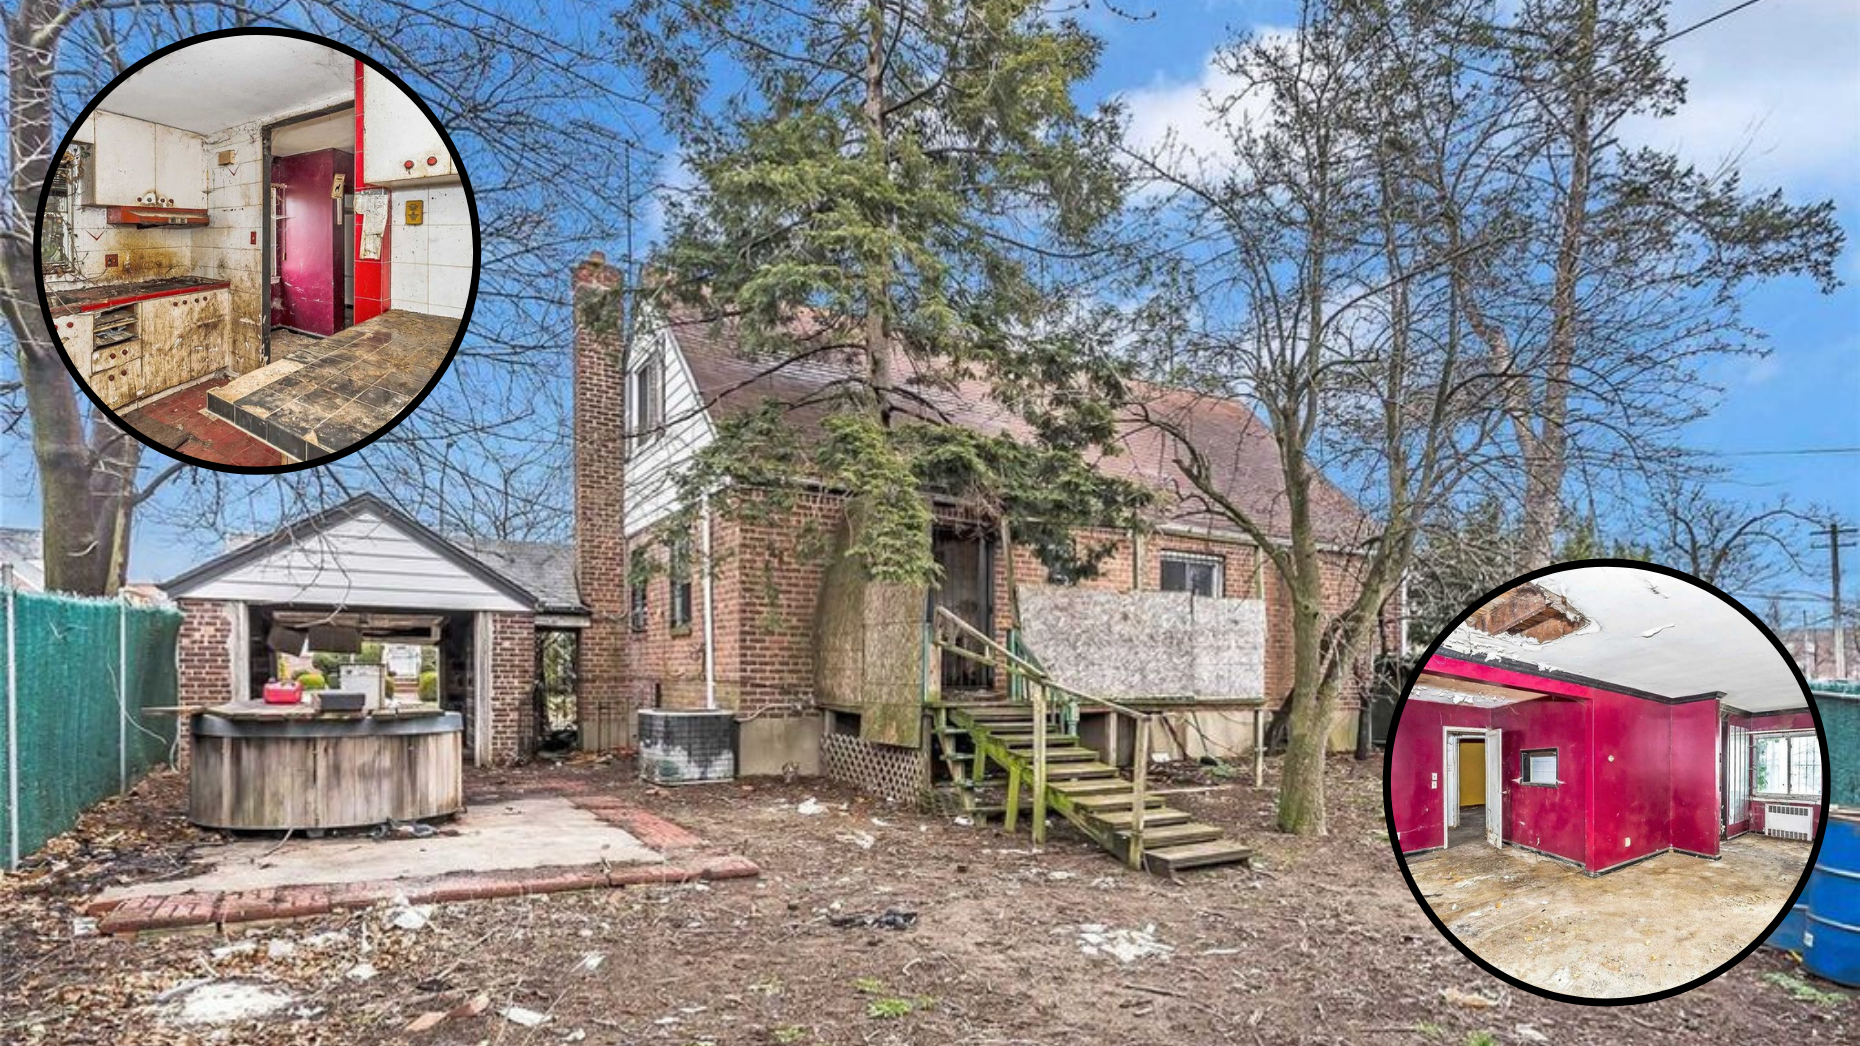 'Unlivable' New York City 'house of horrors' sells for a cool $720K